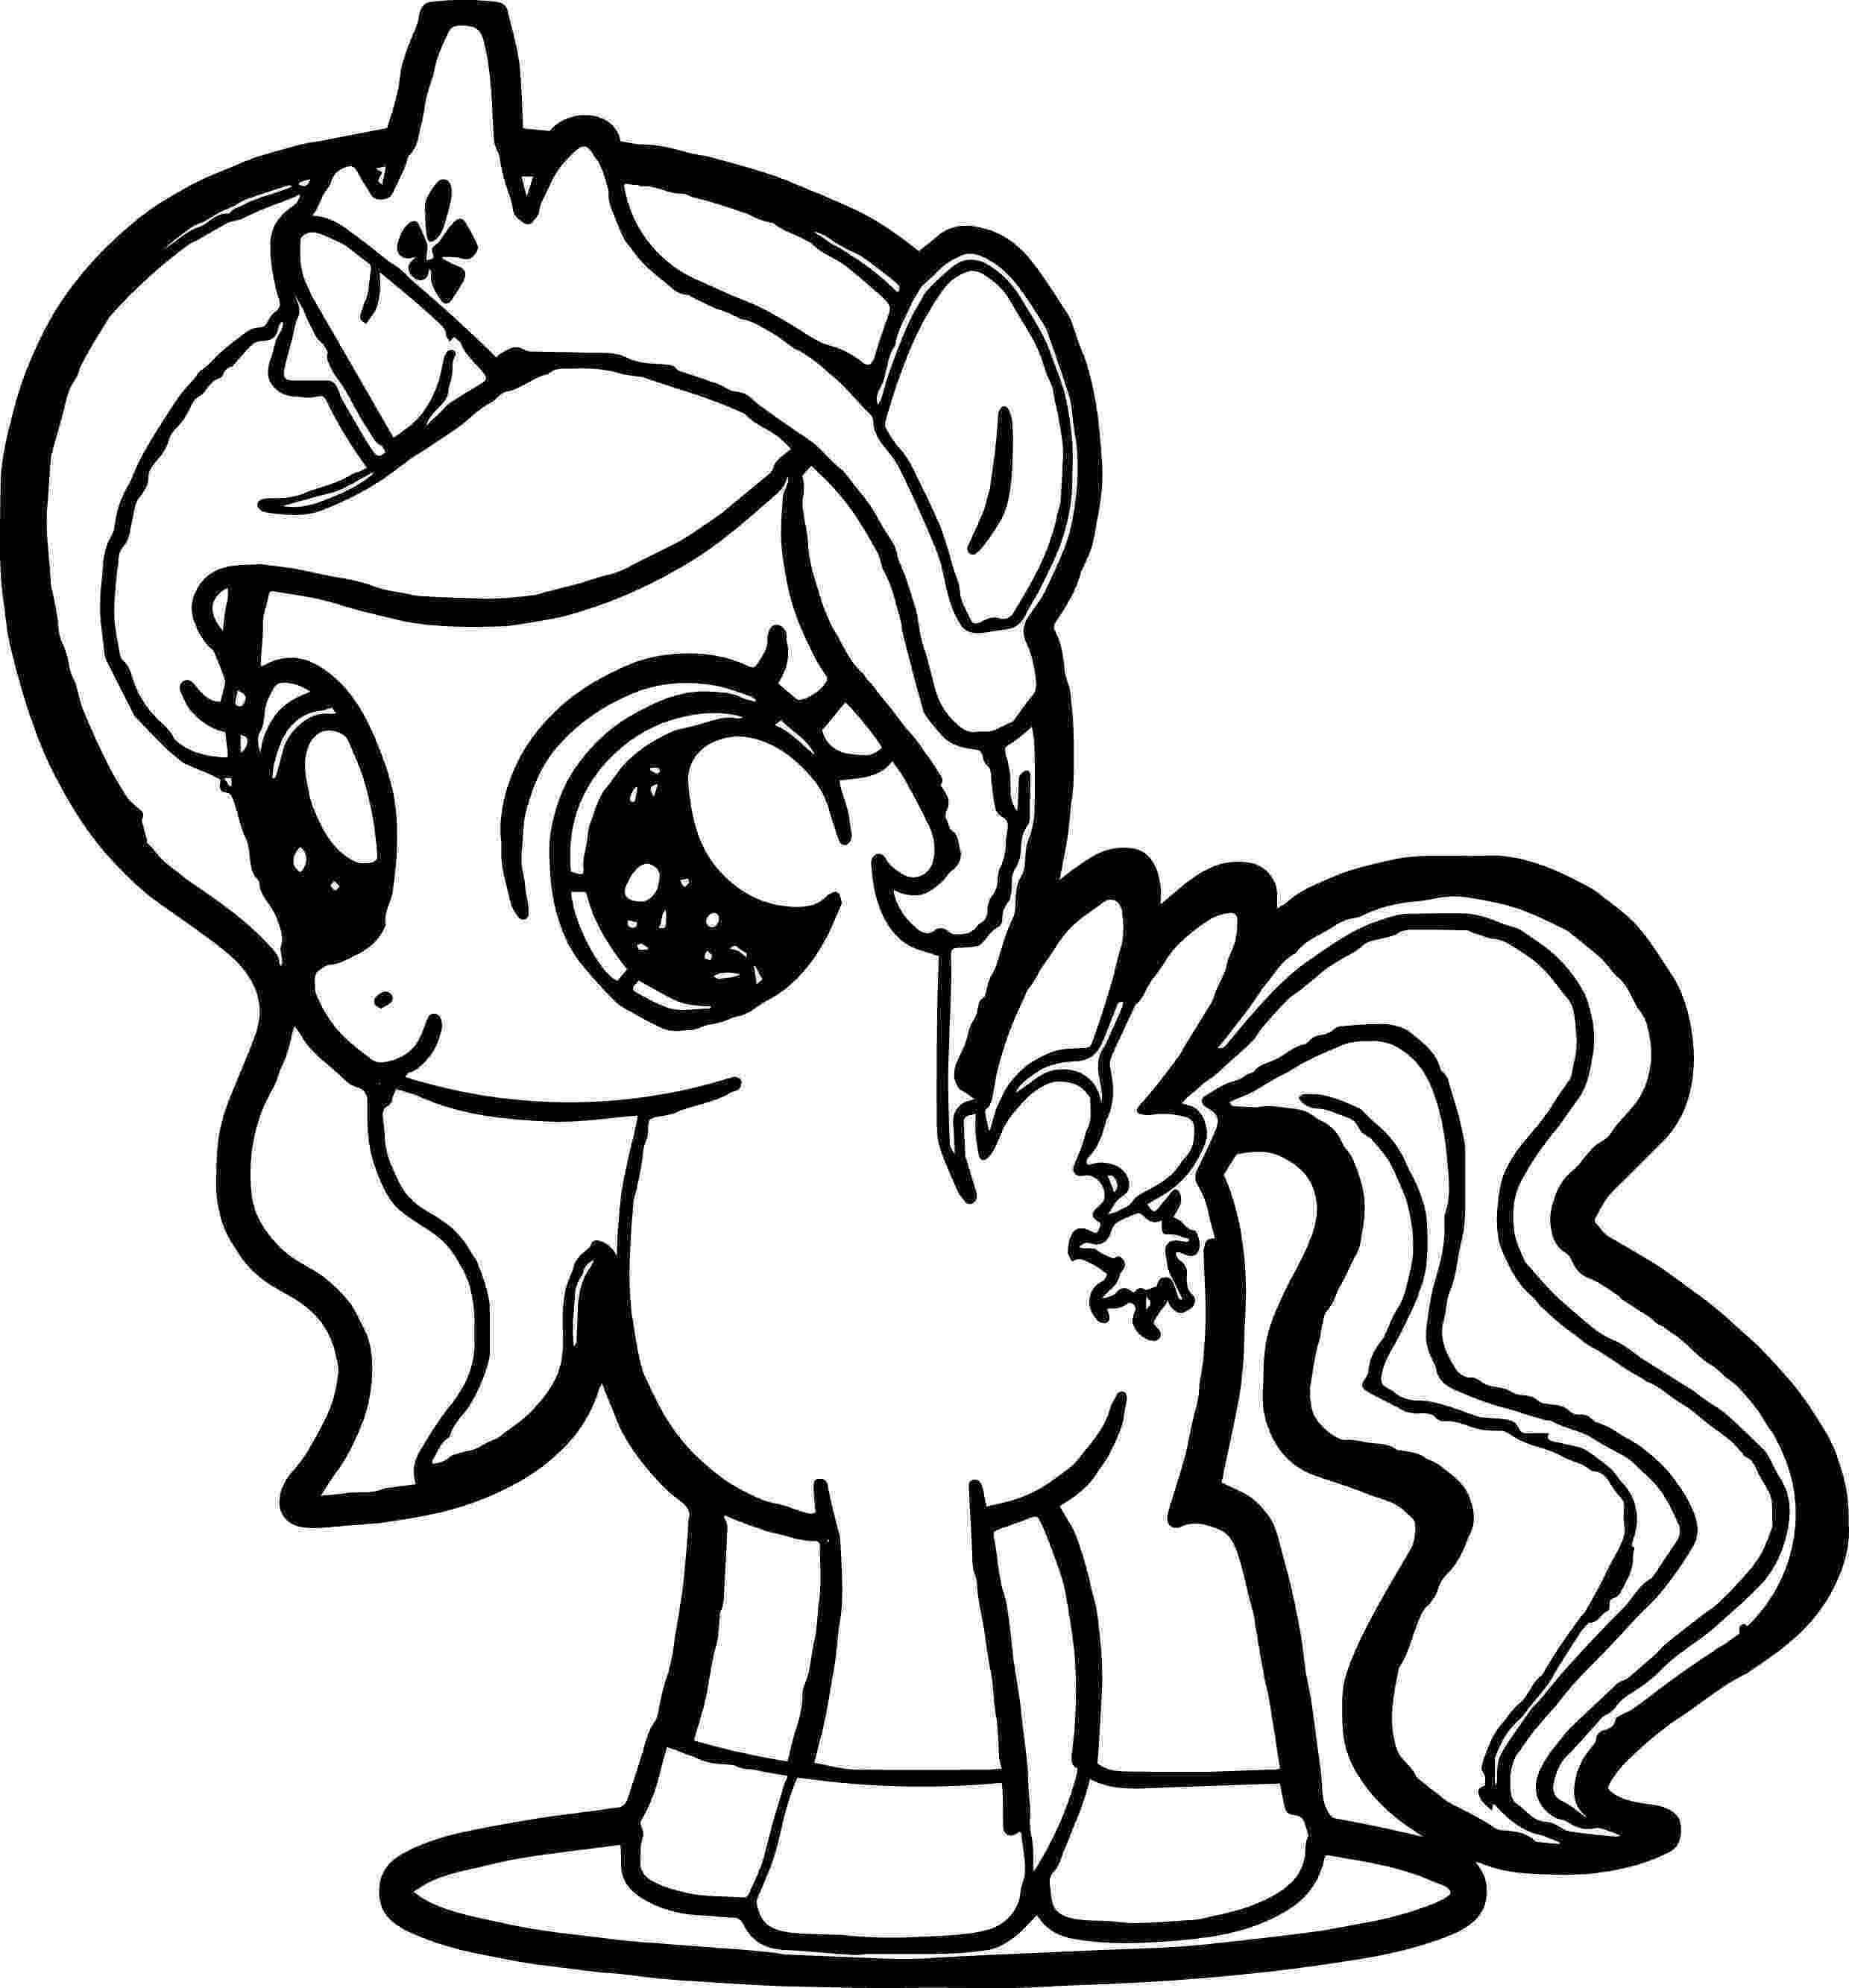 coloring pages of horses and ponies pin by sheryl gray on coloring pages horse coloring ponies of and horses pages coloring